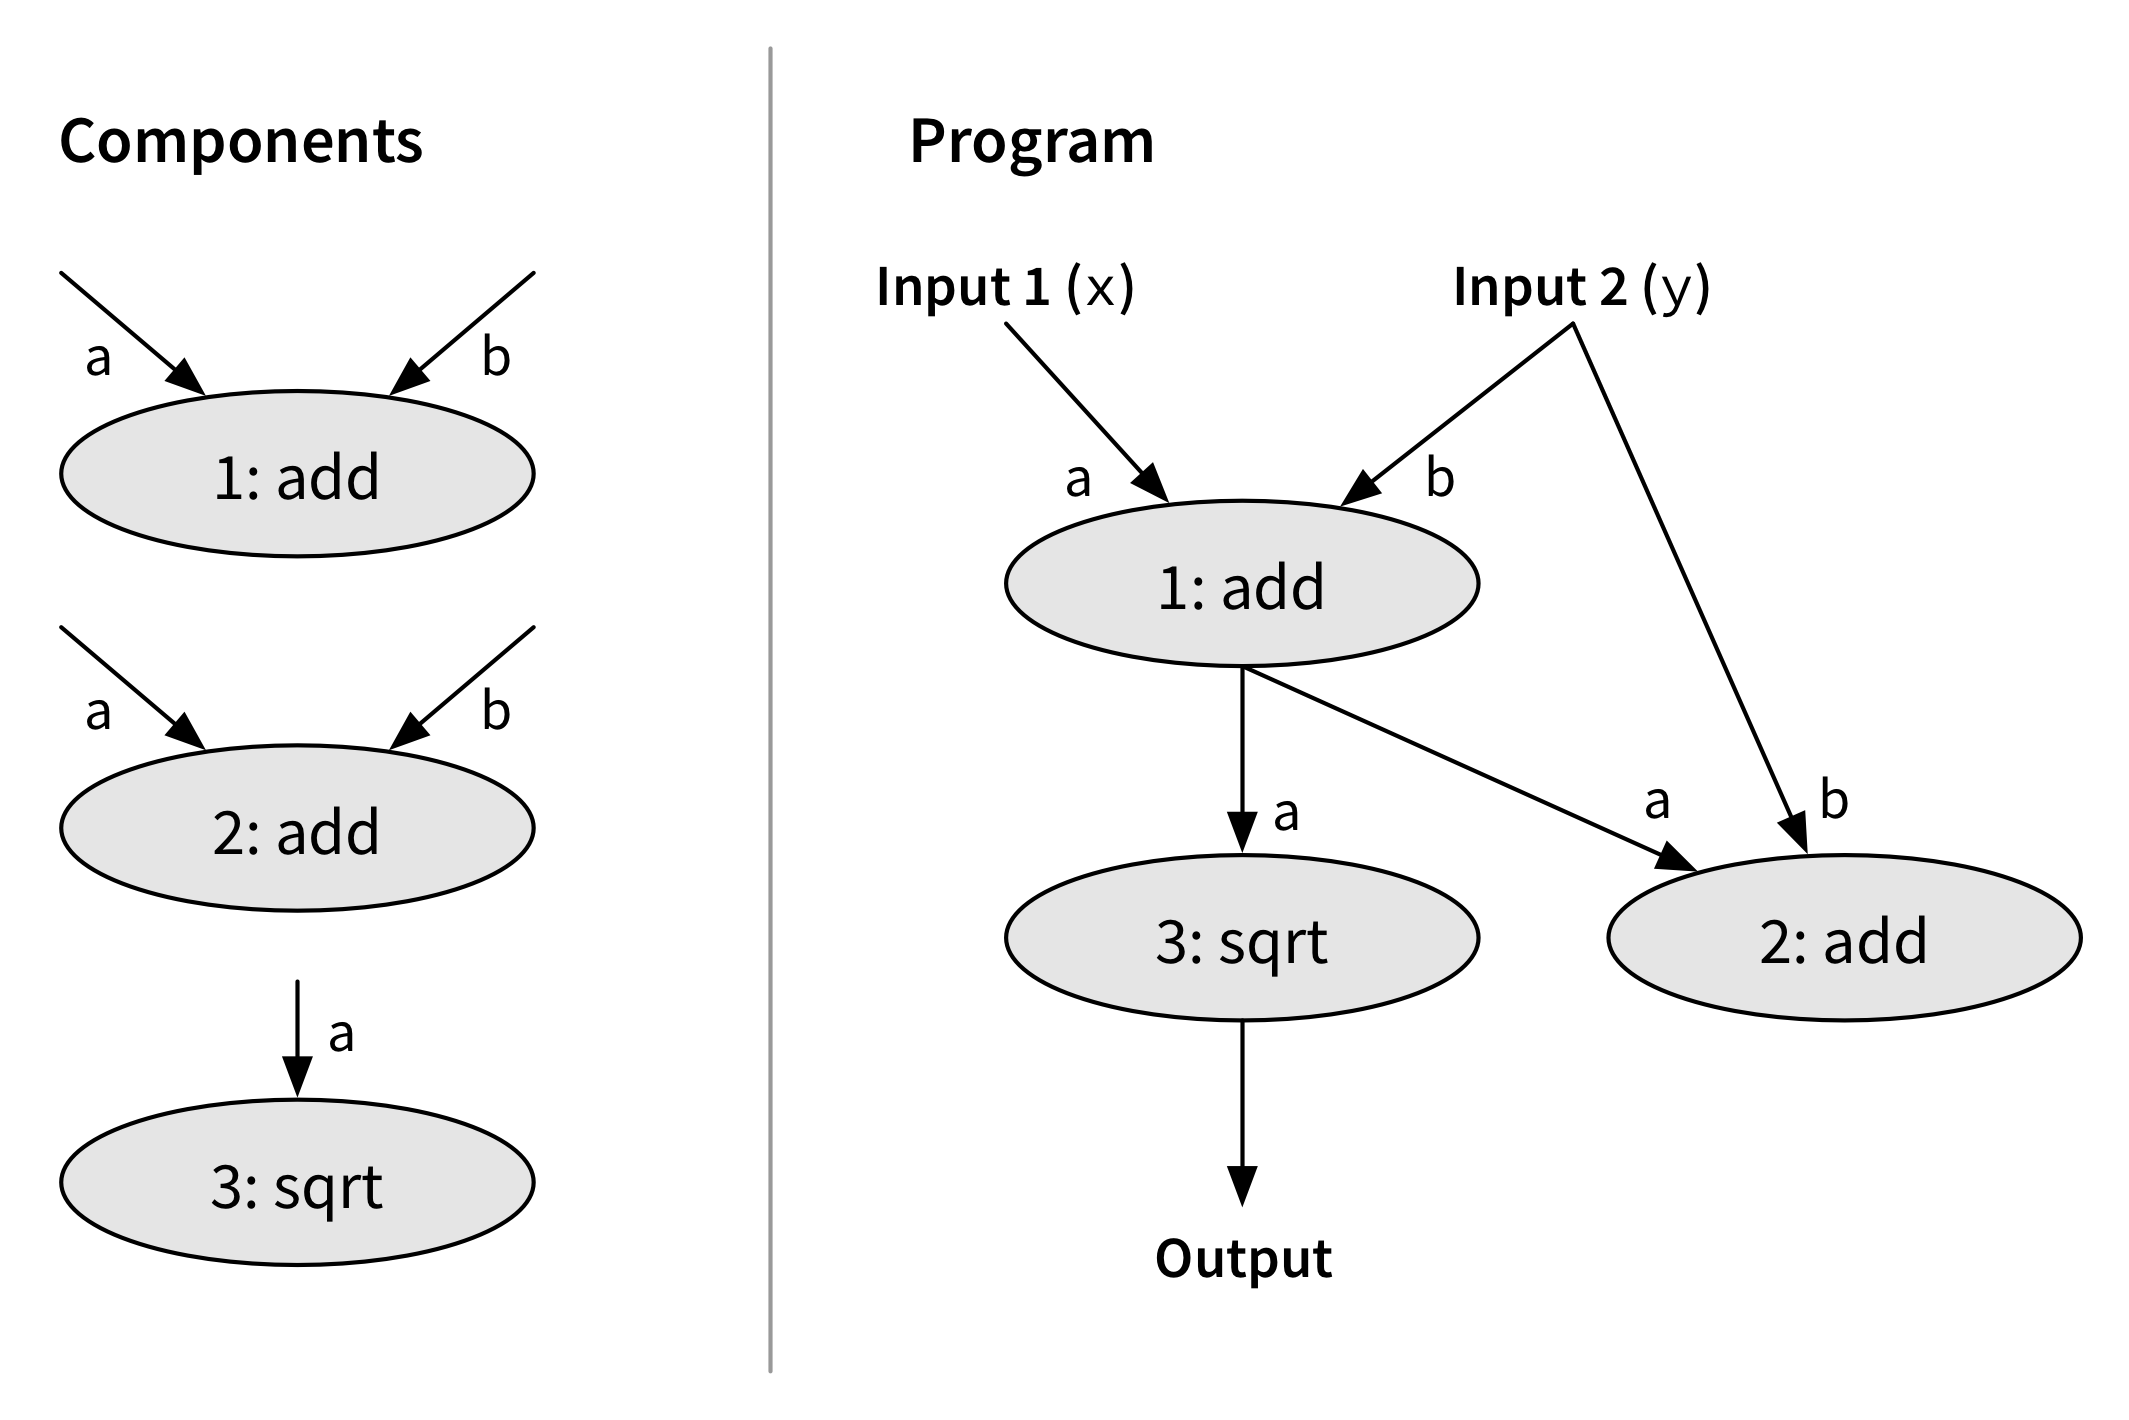 oracle-guided synthesis strings components together